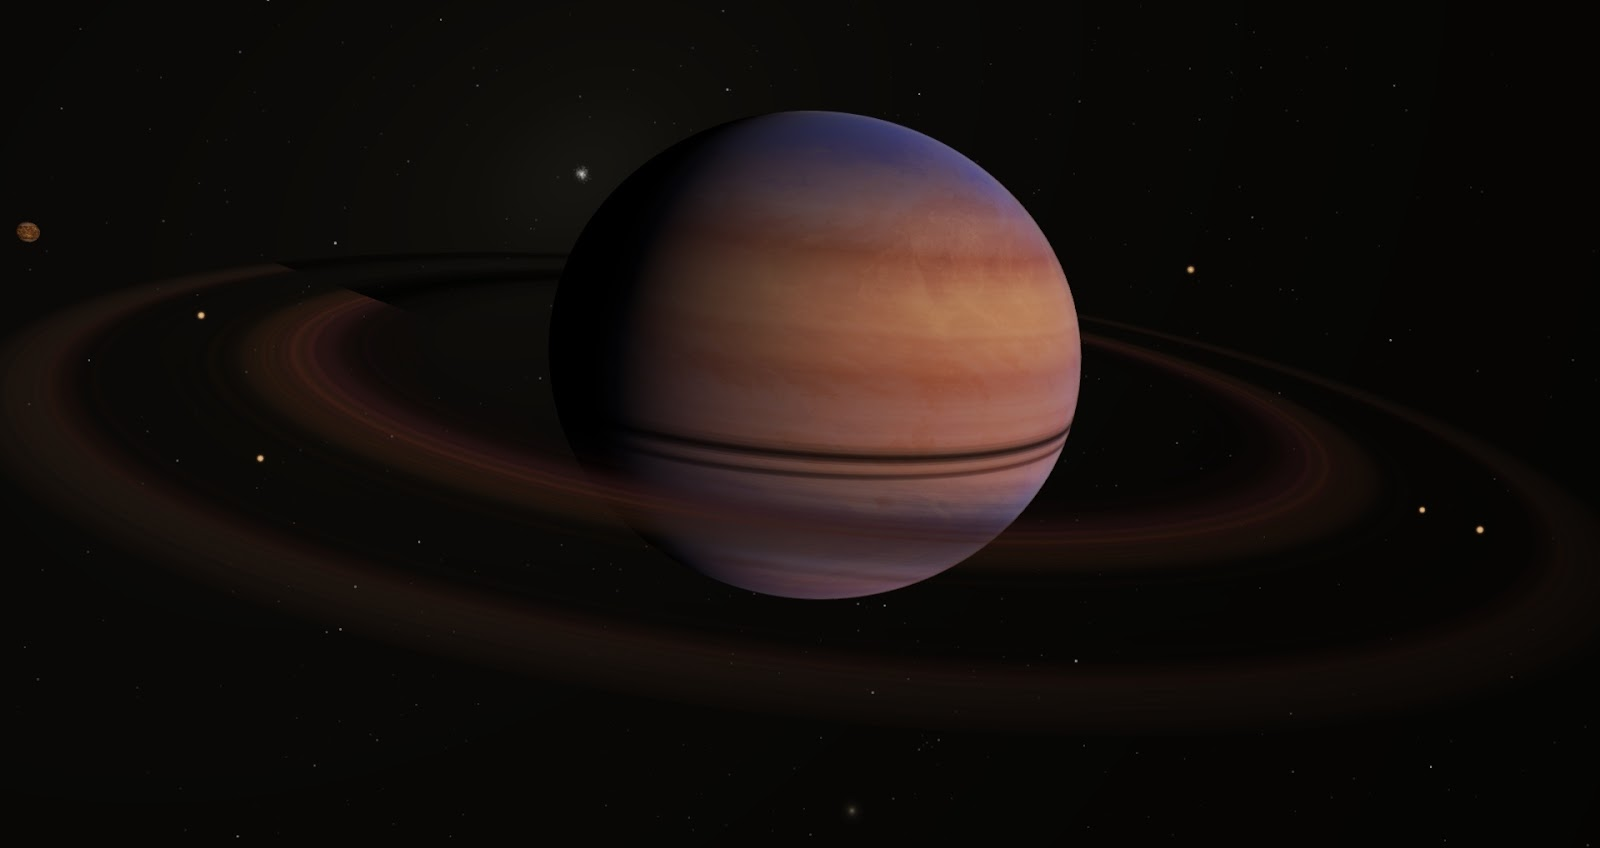 red star planet - photo #14